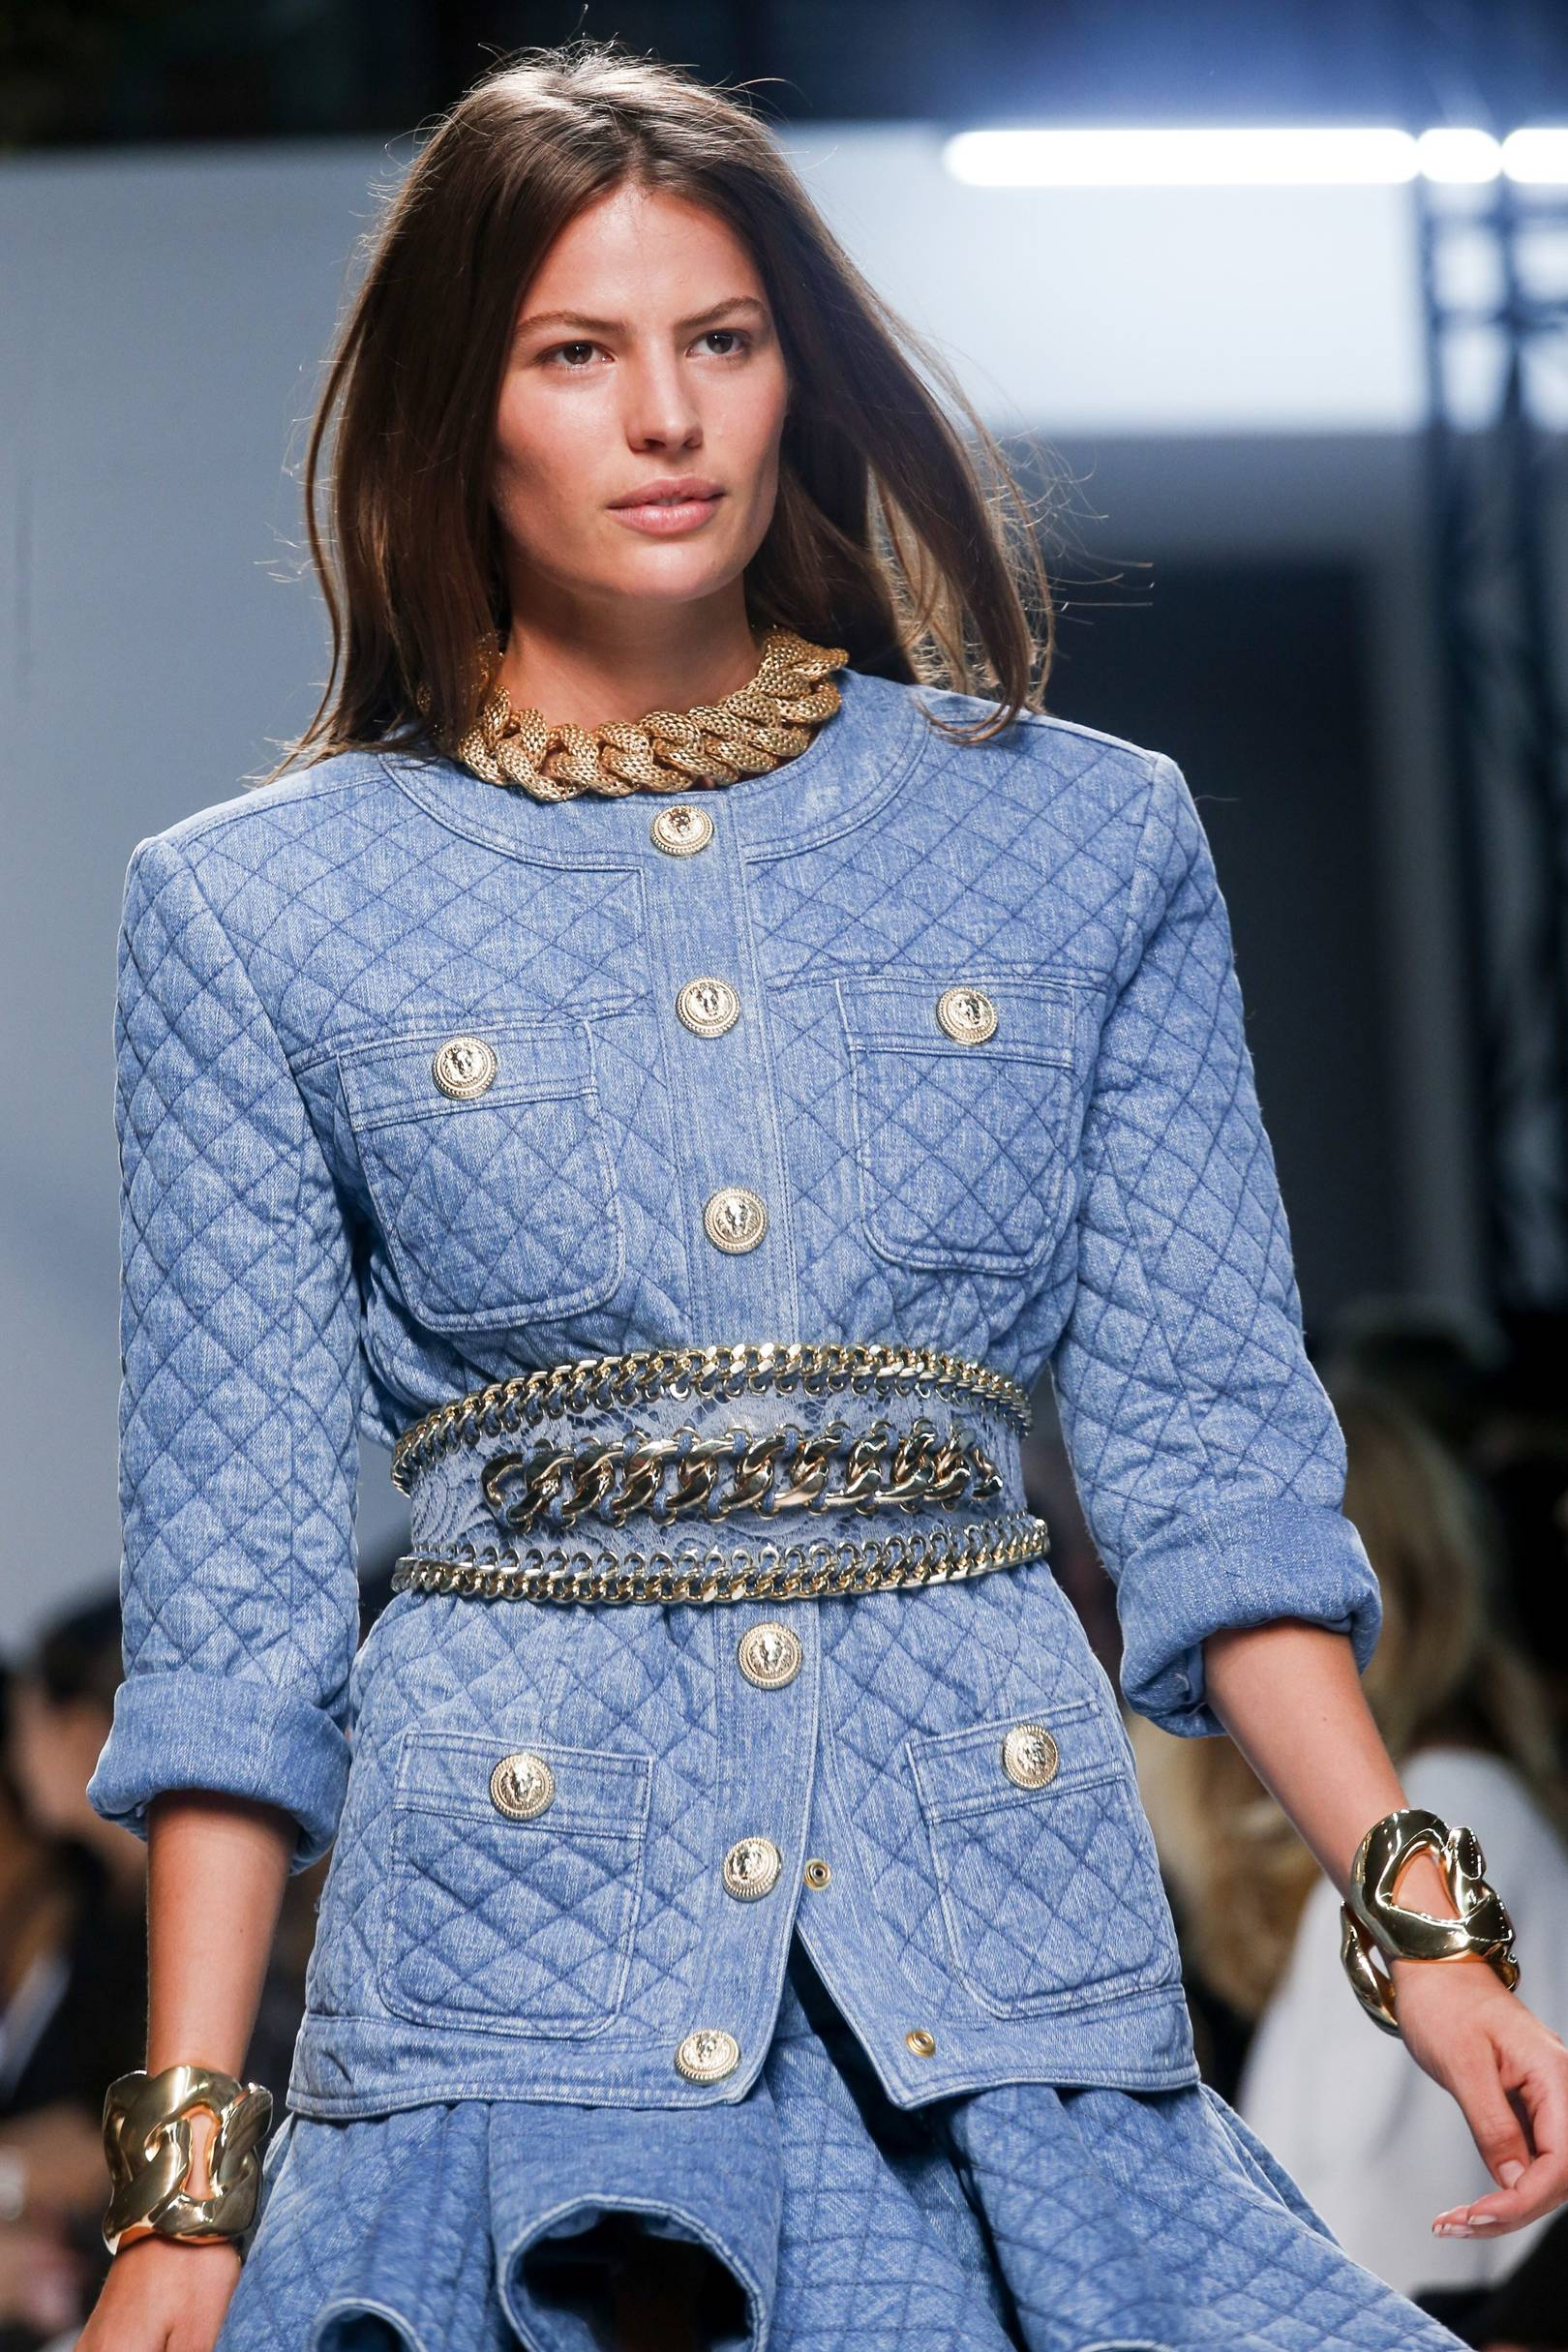 c62fd956f5247 Balmain For H M Wish List Pieces From The Catwalk